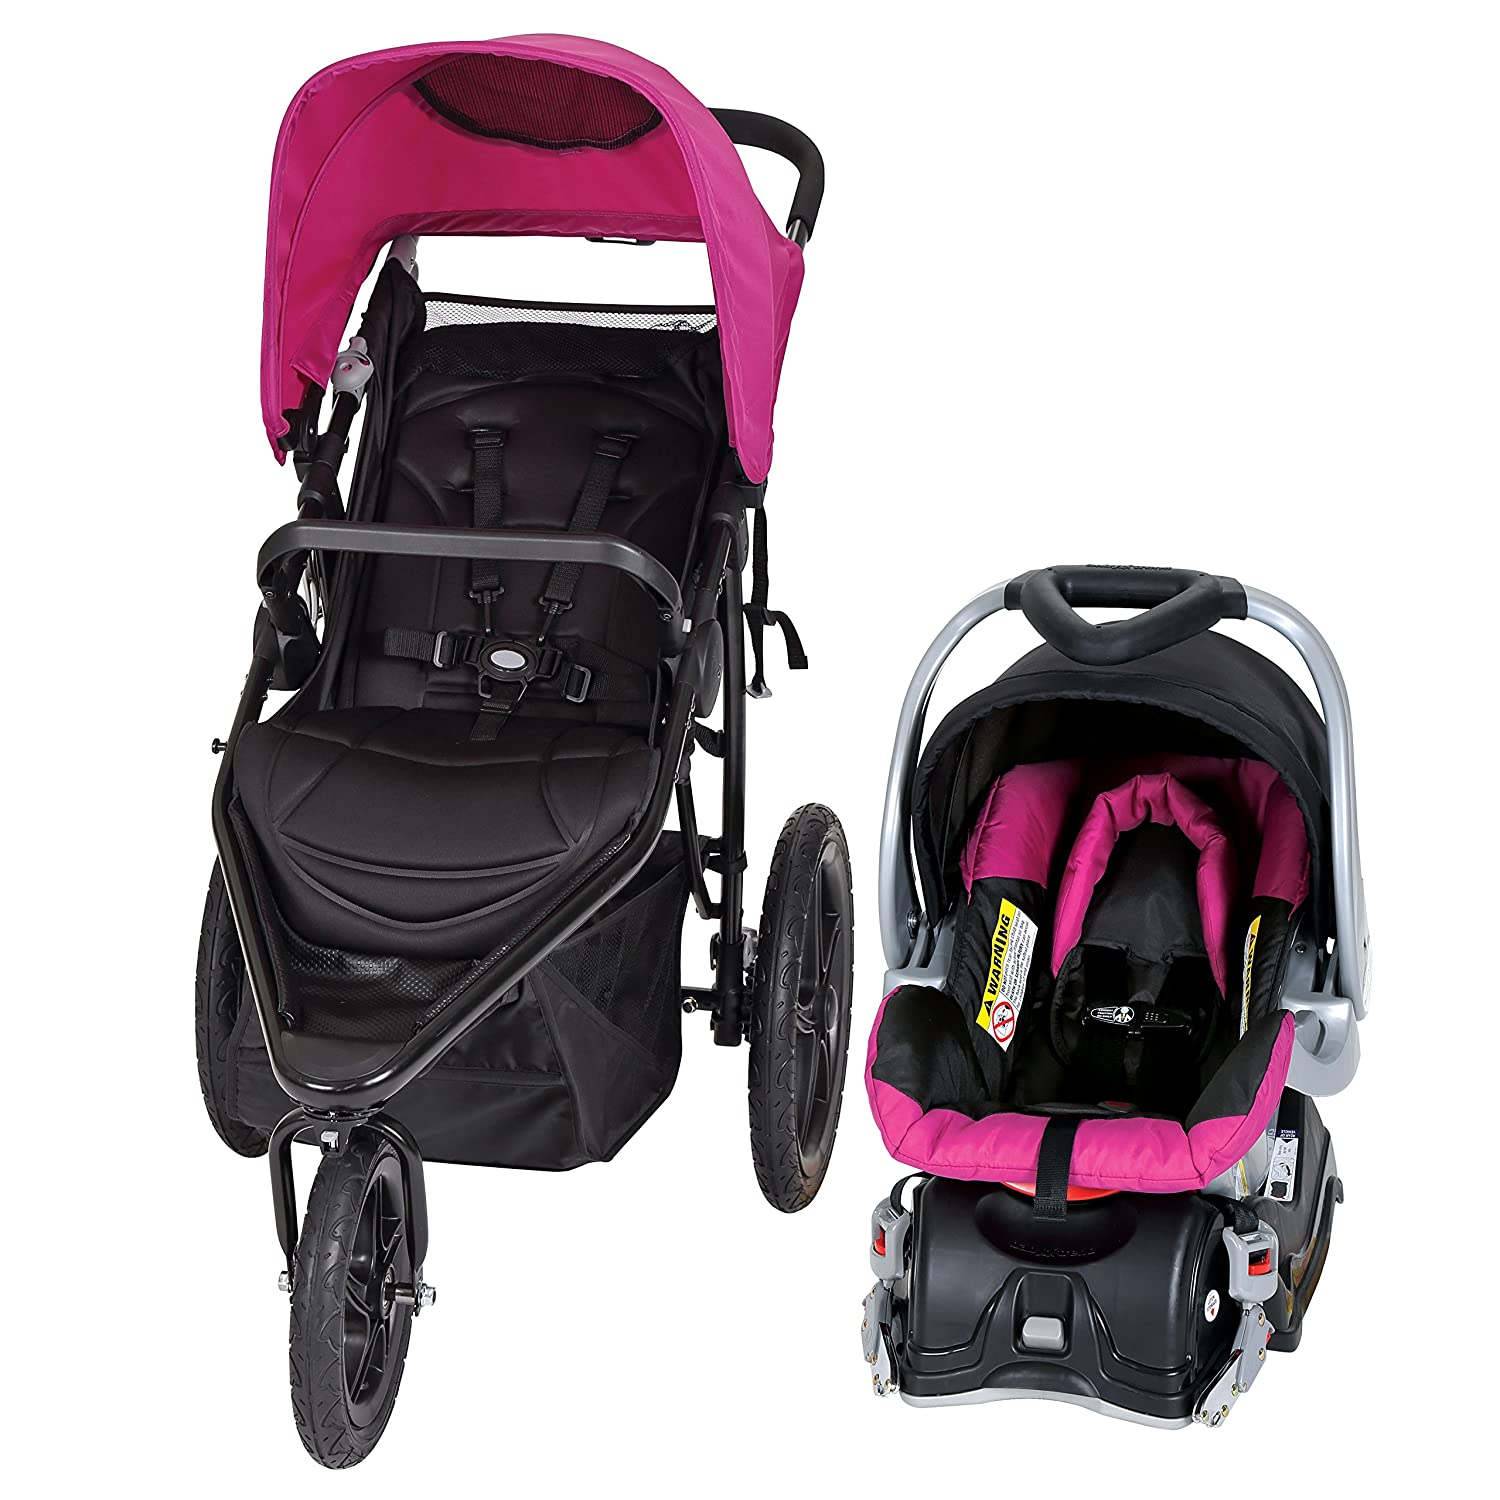 Amazon.com : Baby Trend Stealth Jogger Travel System, Seaport : Baby